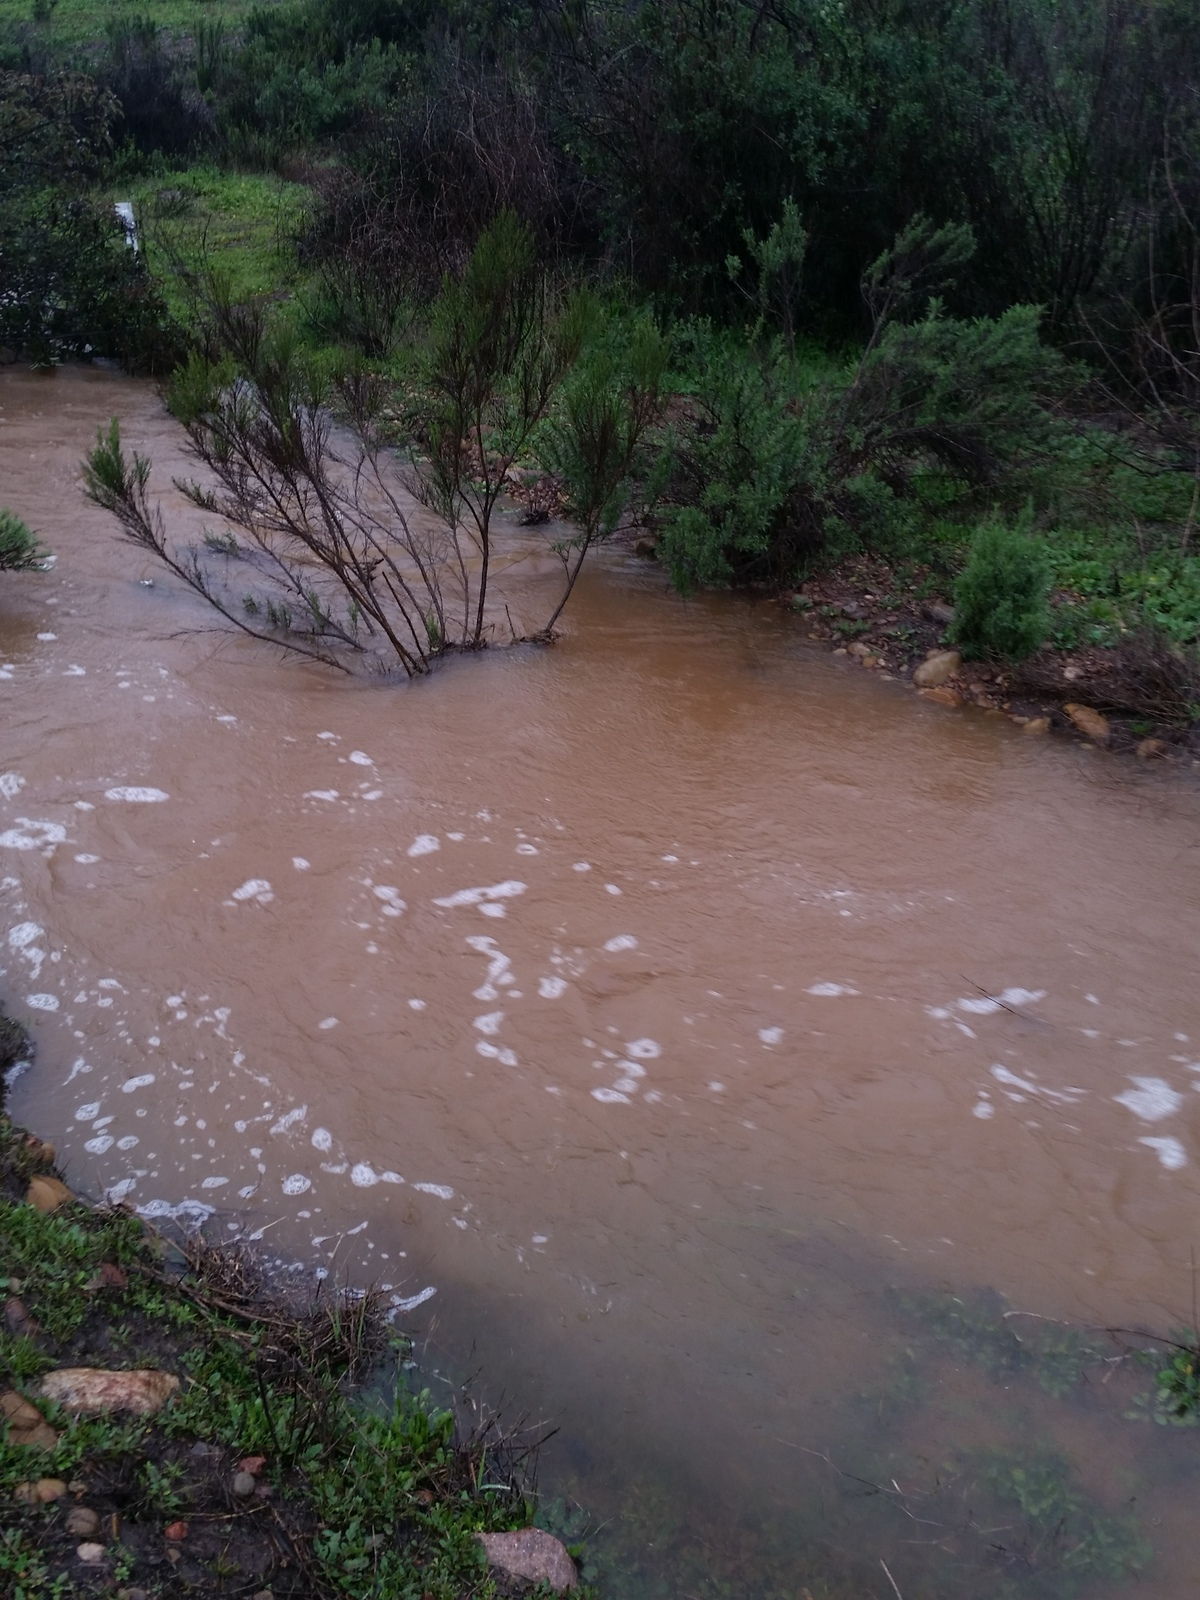 Figure 5. San Clemente Creek flooded by heavy rain (2/14/2019). All of the Willowy Mints planted at this site were under water at this time.